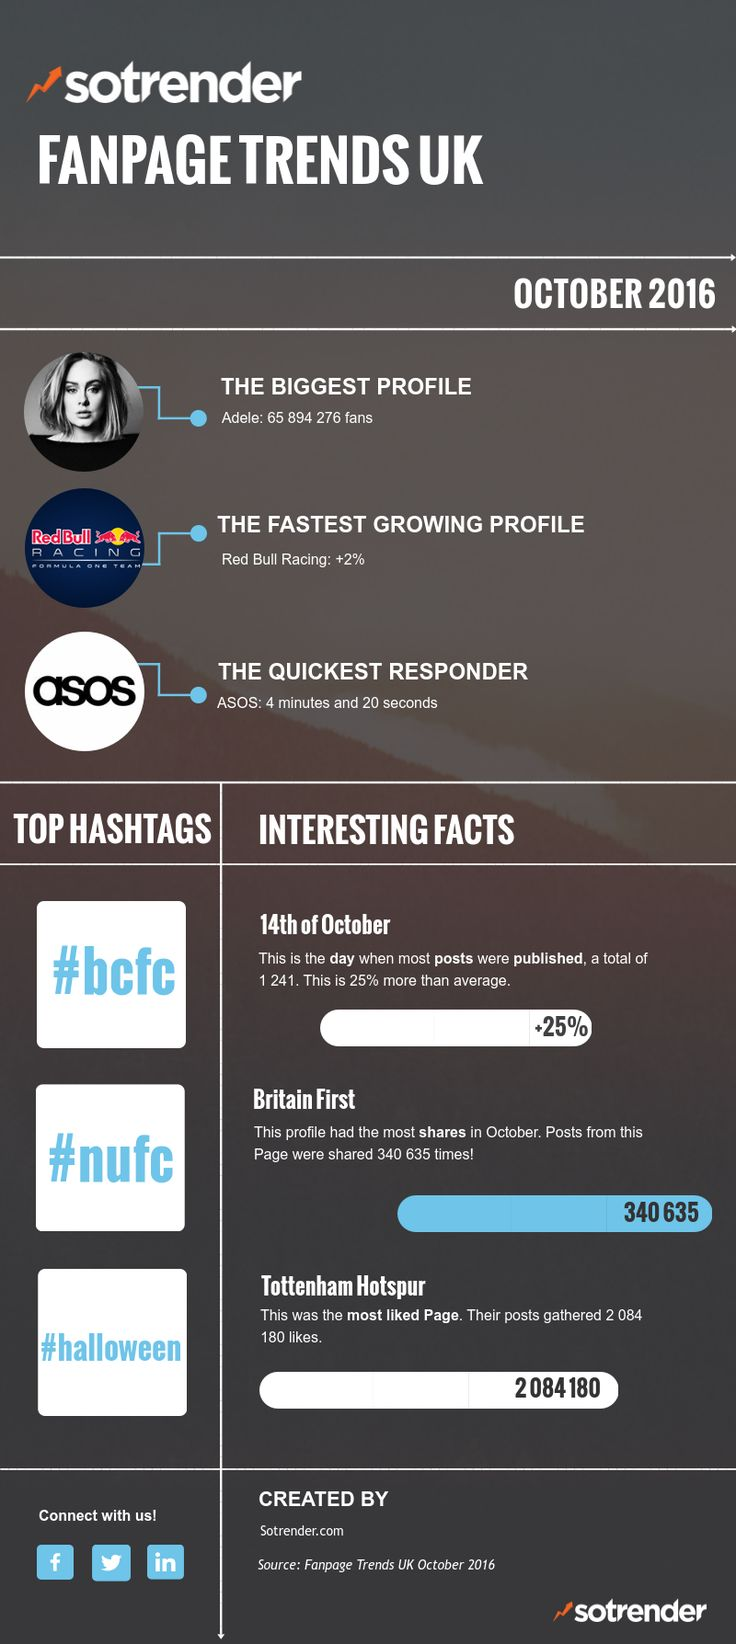 15th edition of Fanpage Trends UK – the first report analyzing brand communication on Facebook in the UK. https://blog.sotrender.com/2016/11/fanpage-trends-uk-october-2016/